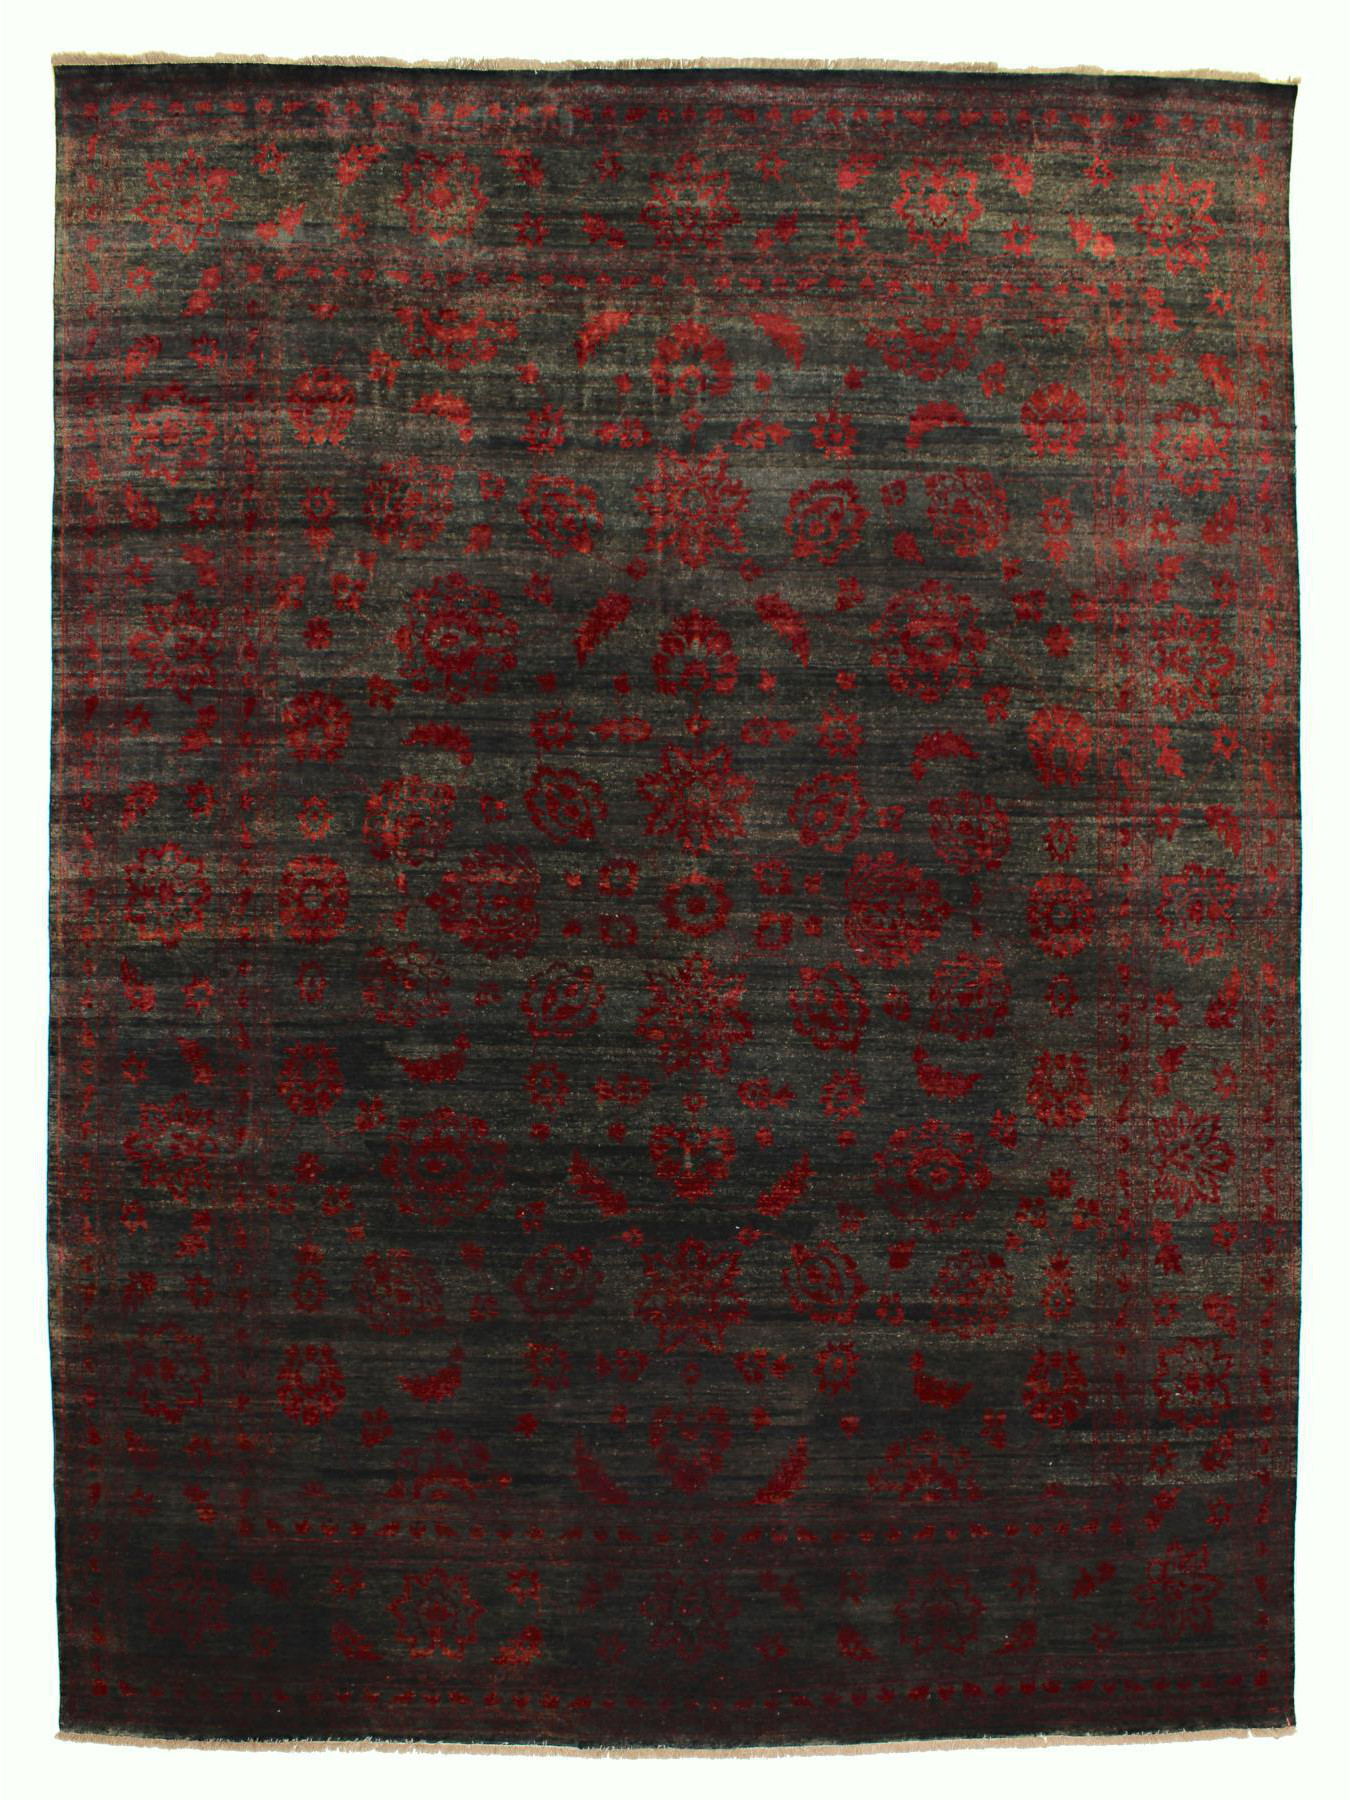 Luxury carpets - Damask-Loribaft empty Outlet